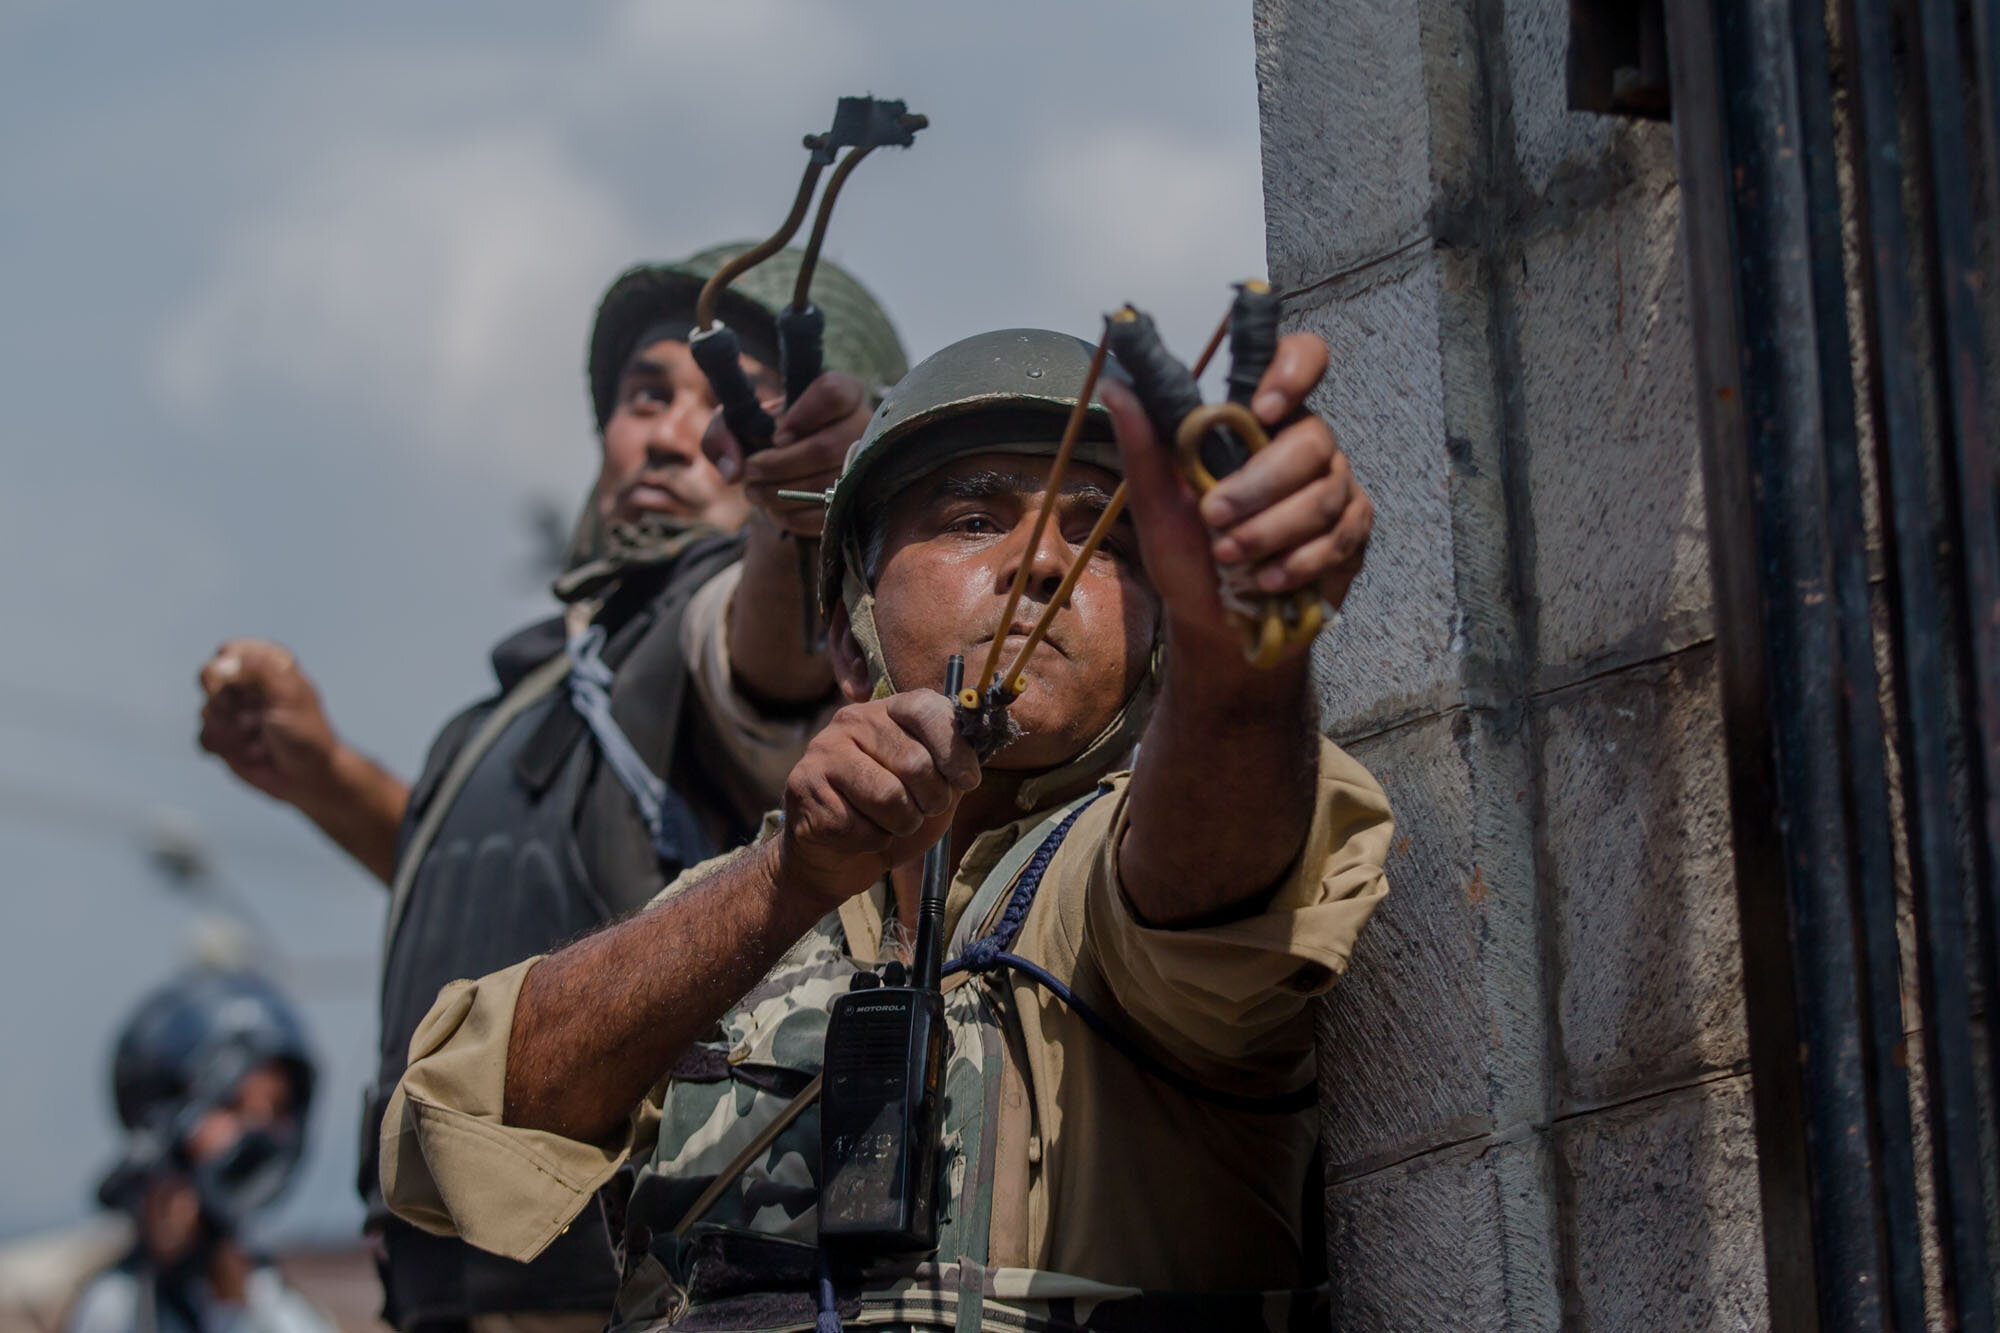 Indian paramilitary soldiers uses slings to shoot glass marbles at Kashmiri protesters in Srinagar, Indian controlled Kashmir, Aug. 4, 2017. (AP Photo/Dar Yasin)